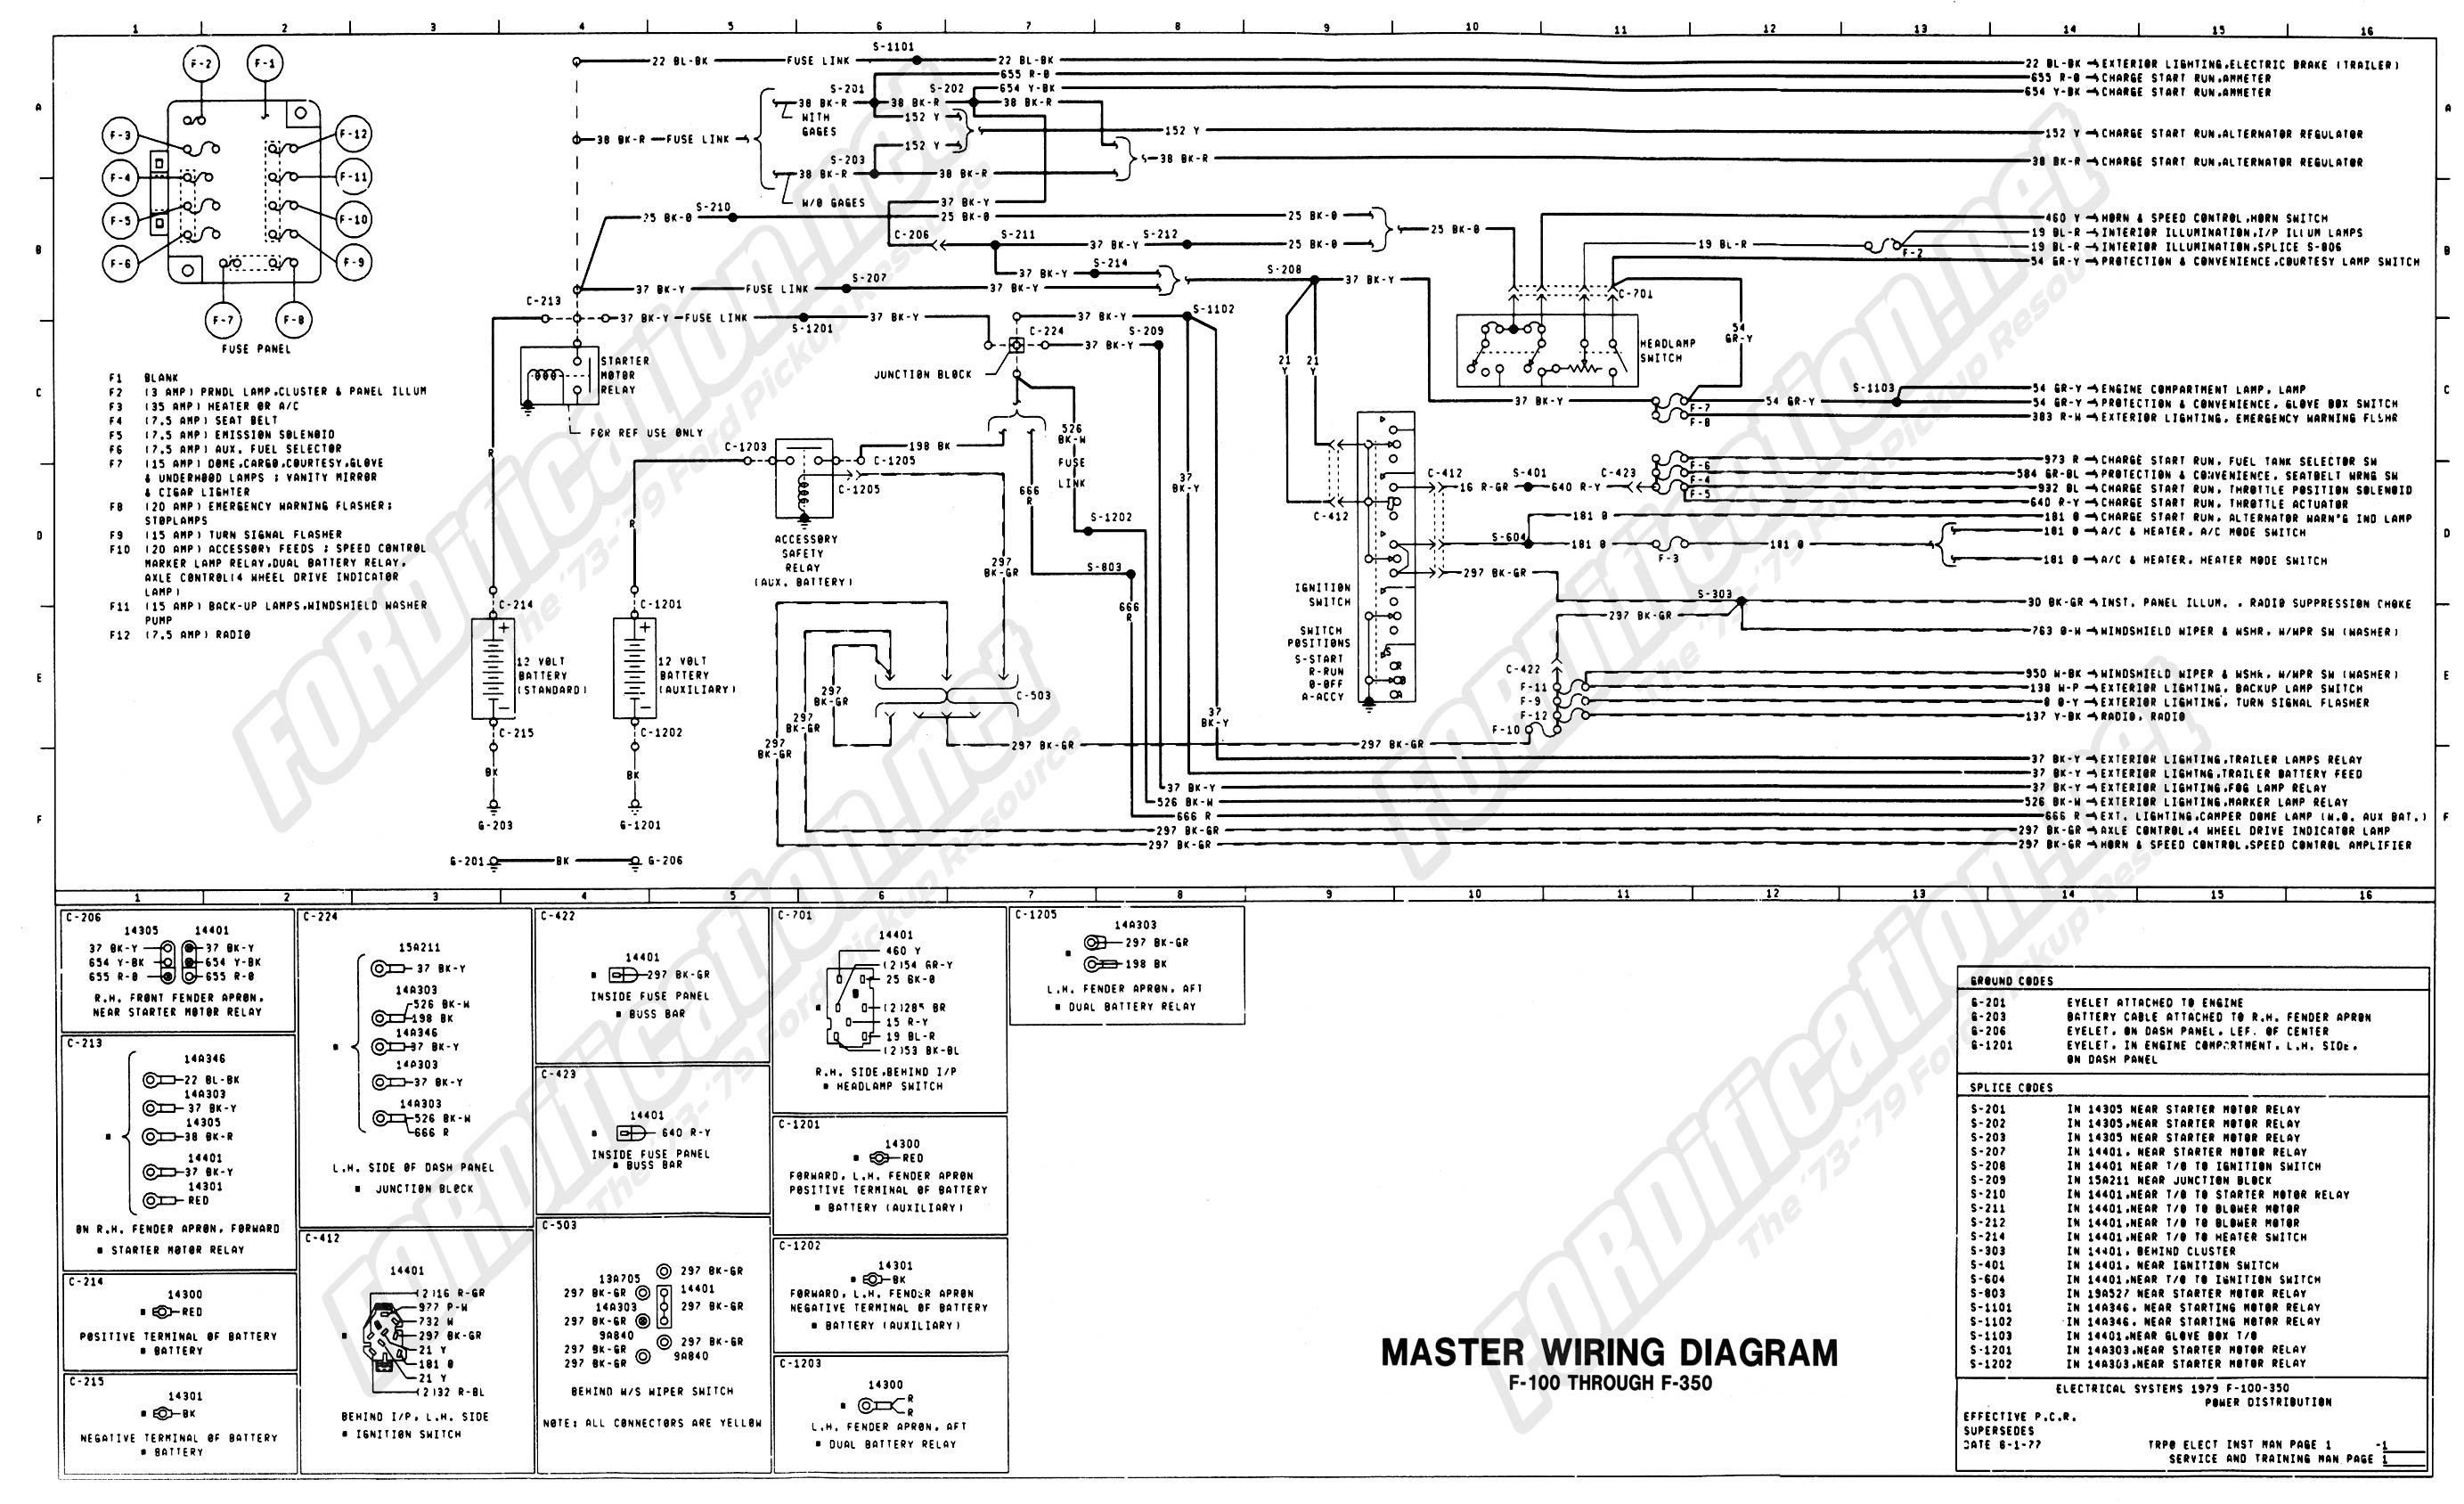 2003 Sterling Wiring Diagram, 2003, Free Engine Image For